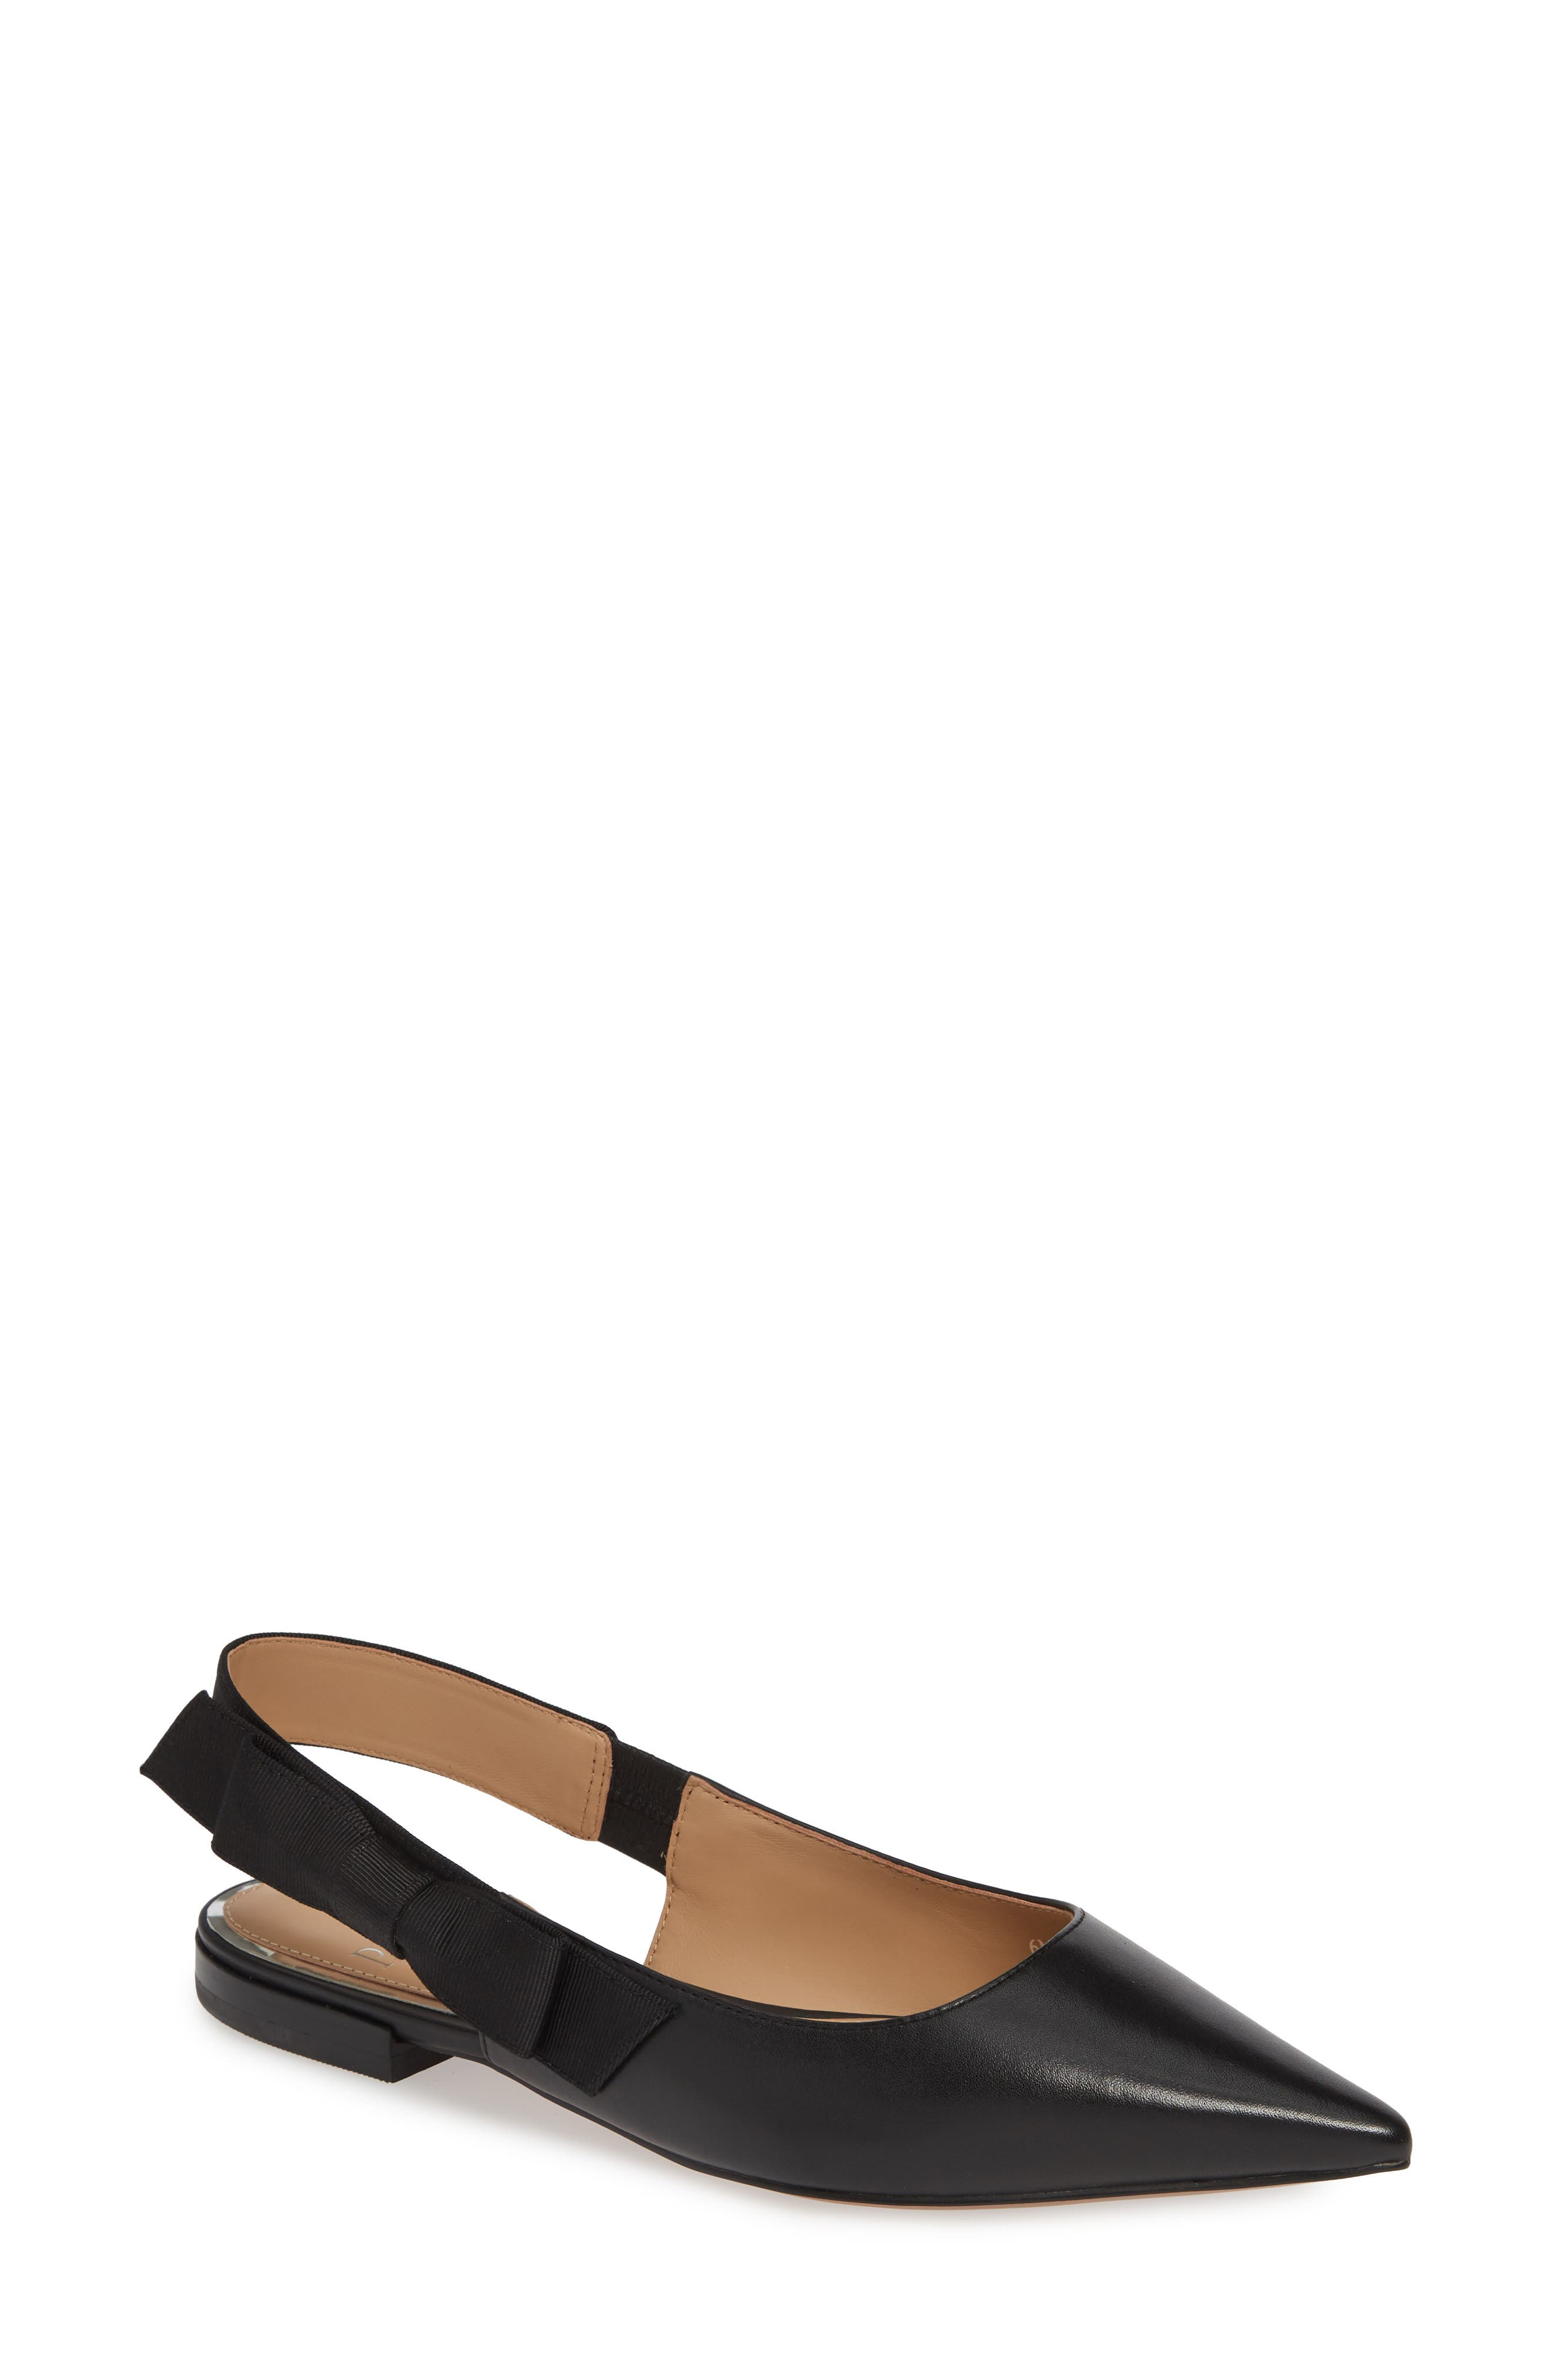 LINEA PAOLO, Darcy Bow Slingback Flat, Main thumbnail 1, color, BLACK LEATHER